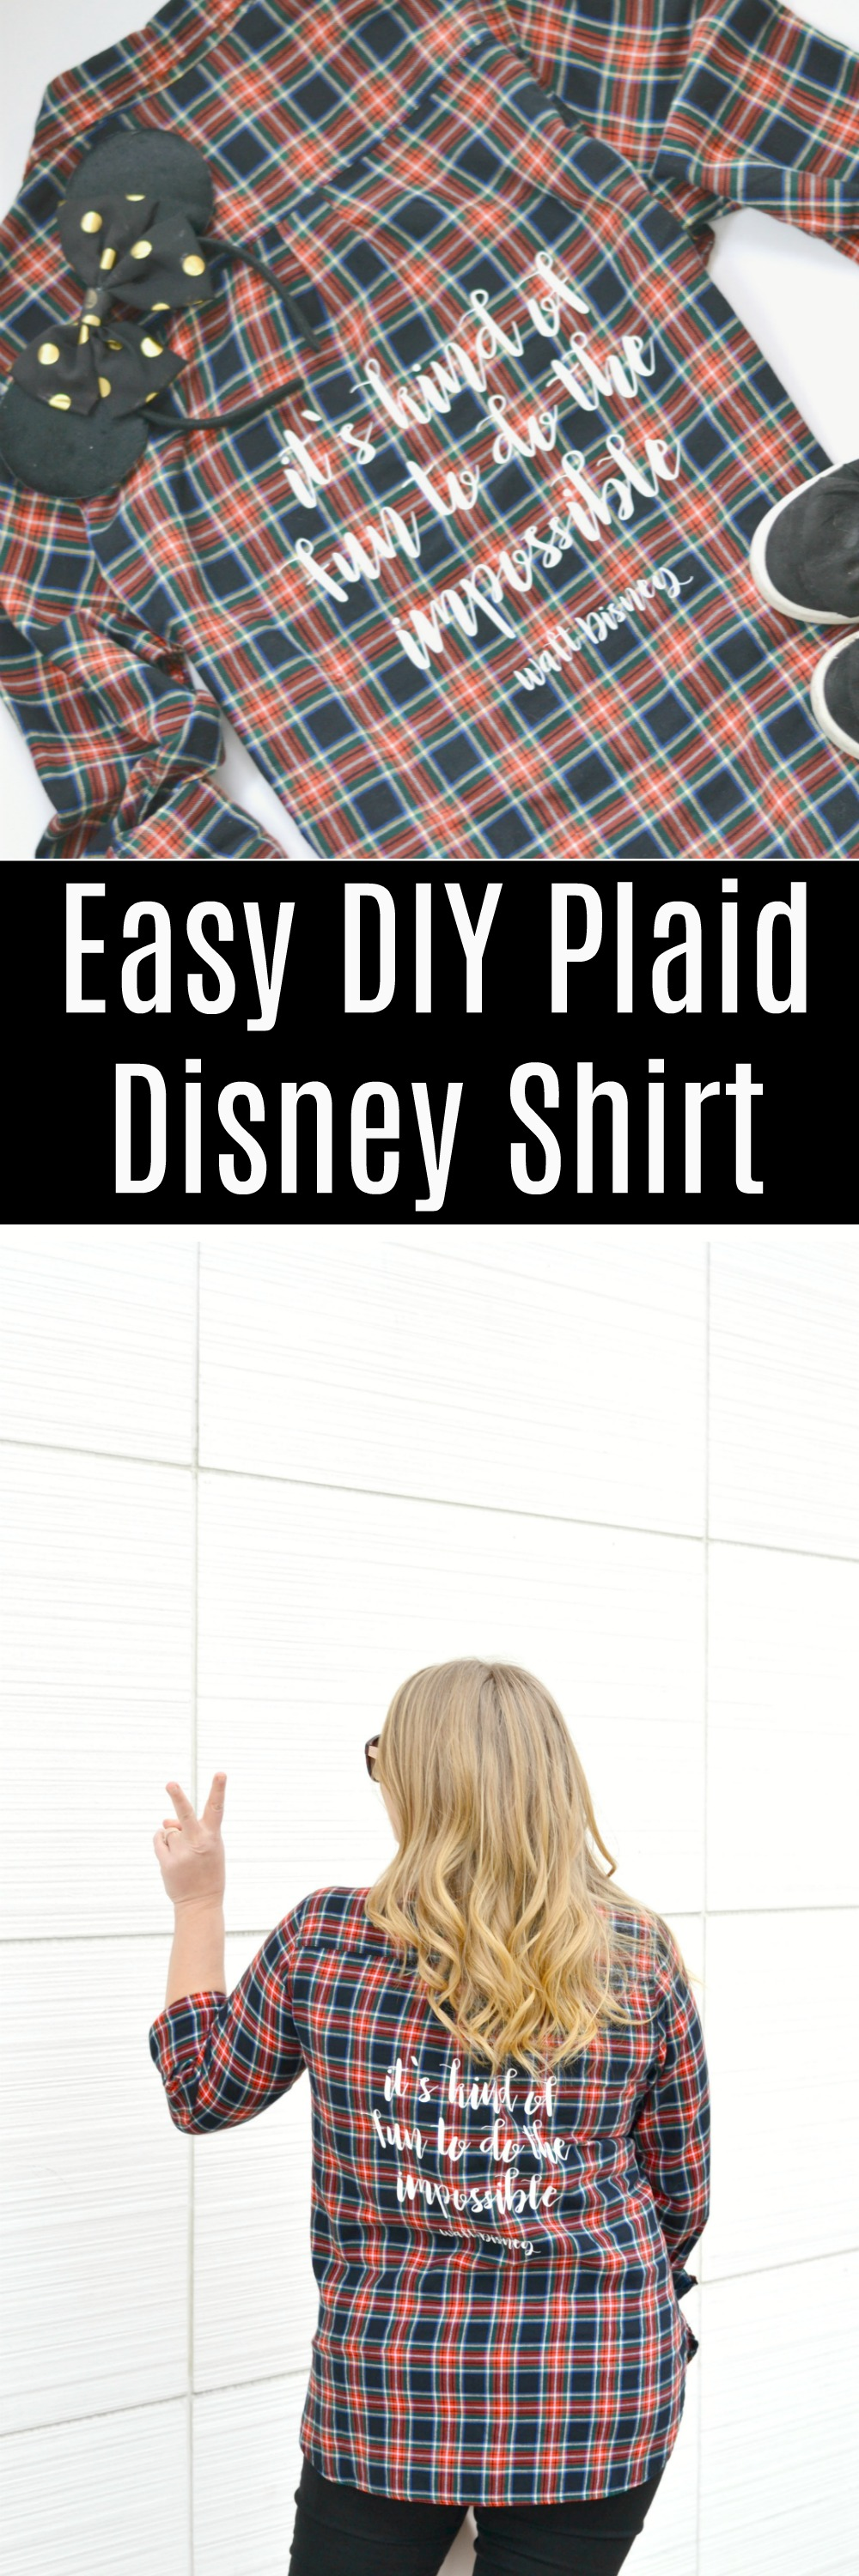 Plaid Shirt with Walt Disney Quote